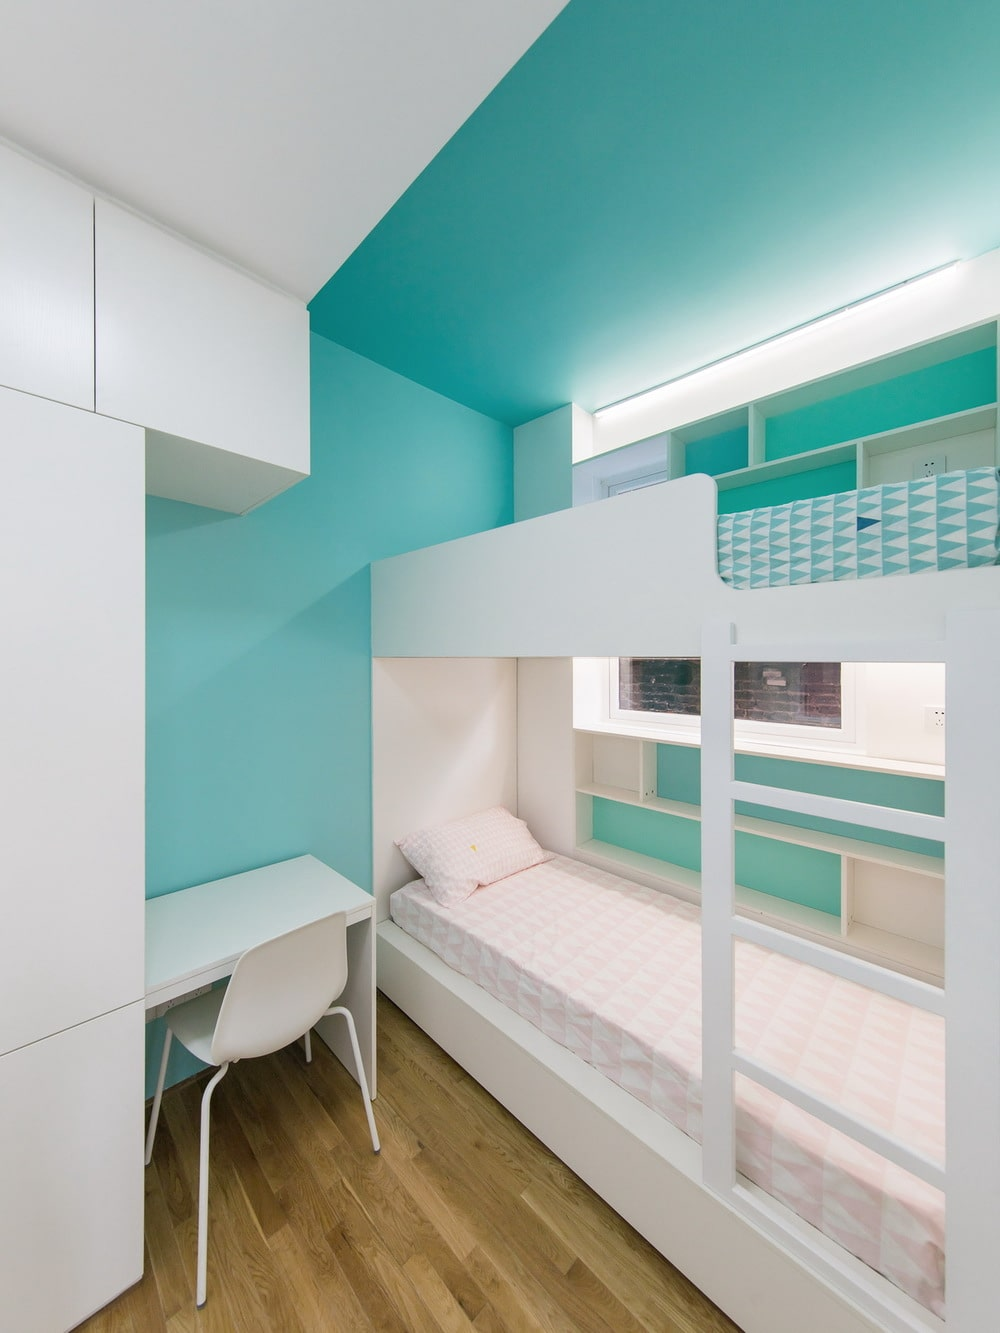 This is a children's bedroom with a white bunk bed and built-in study desk to the cabinet that contrasts the blue walls and ceiling.